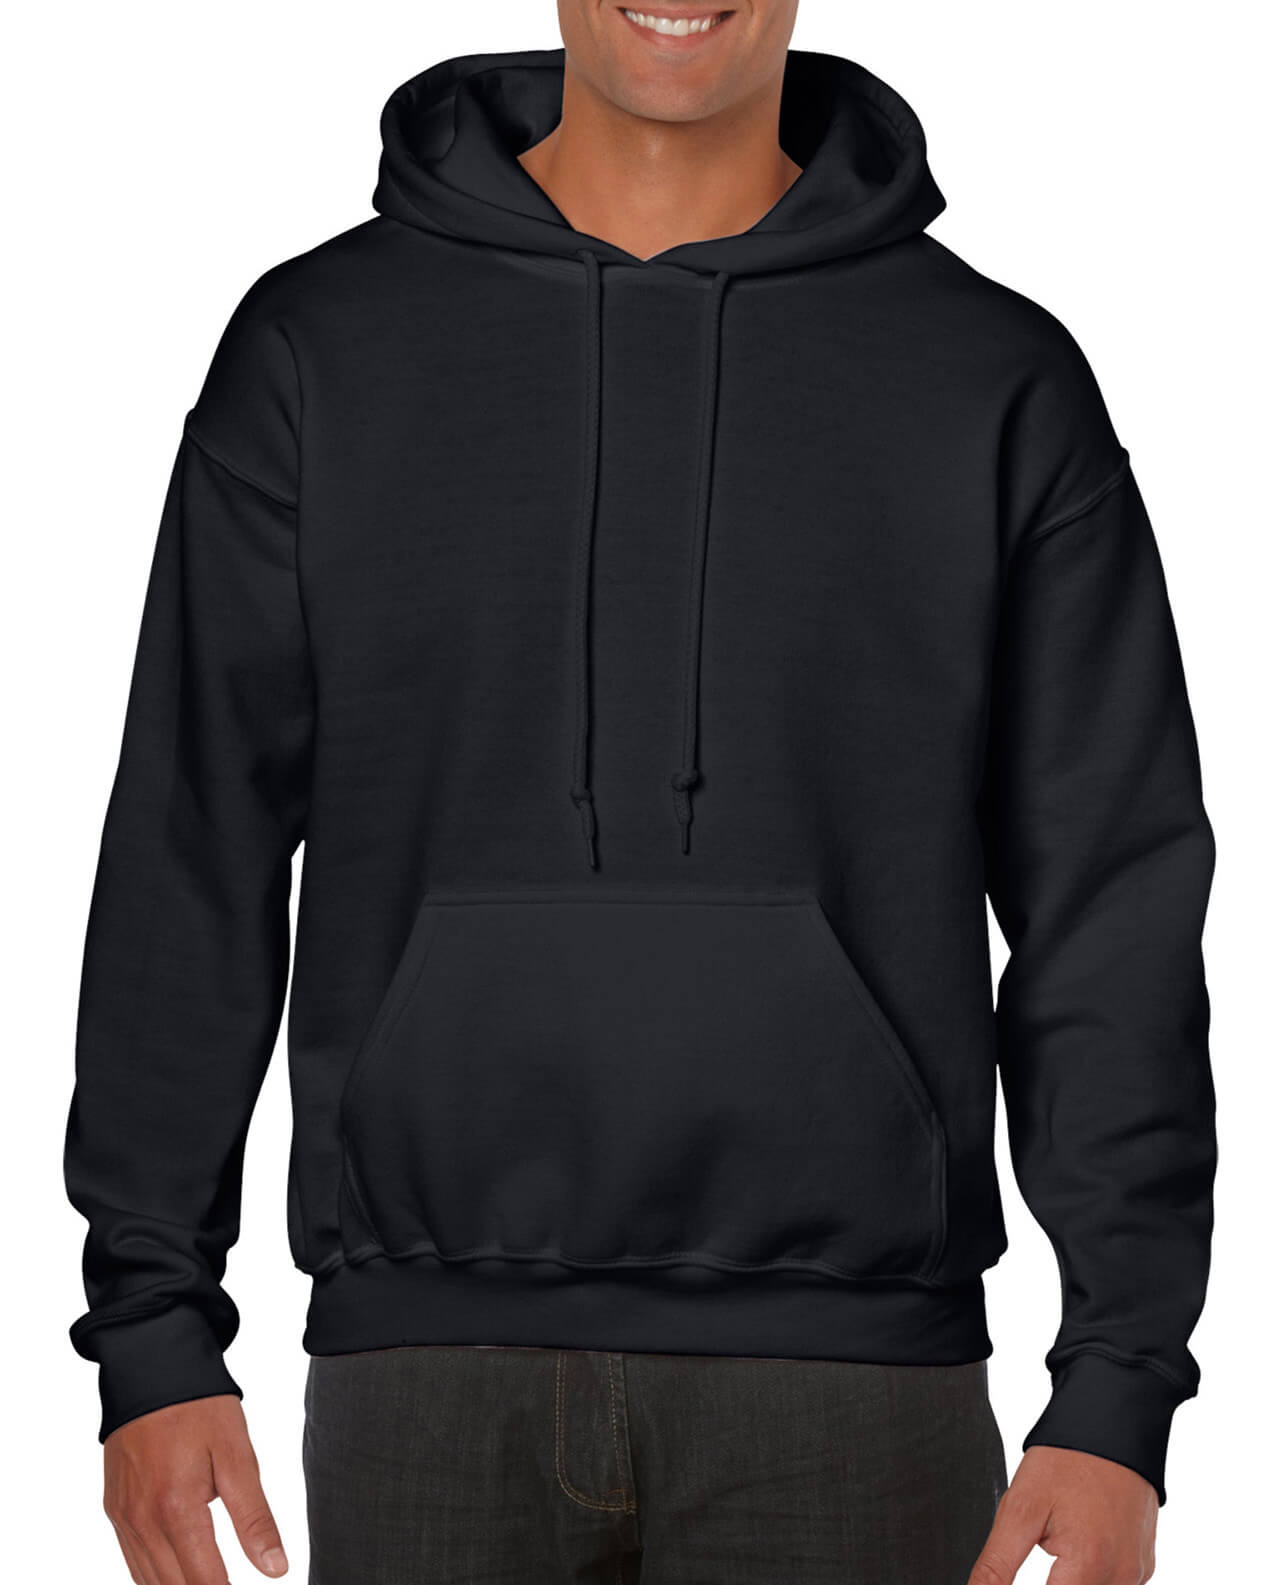 ADULT 50/50 HOODED SWEAT-Black